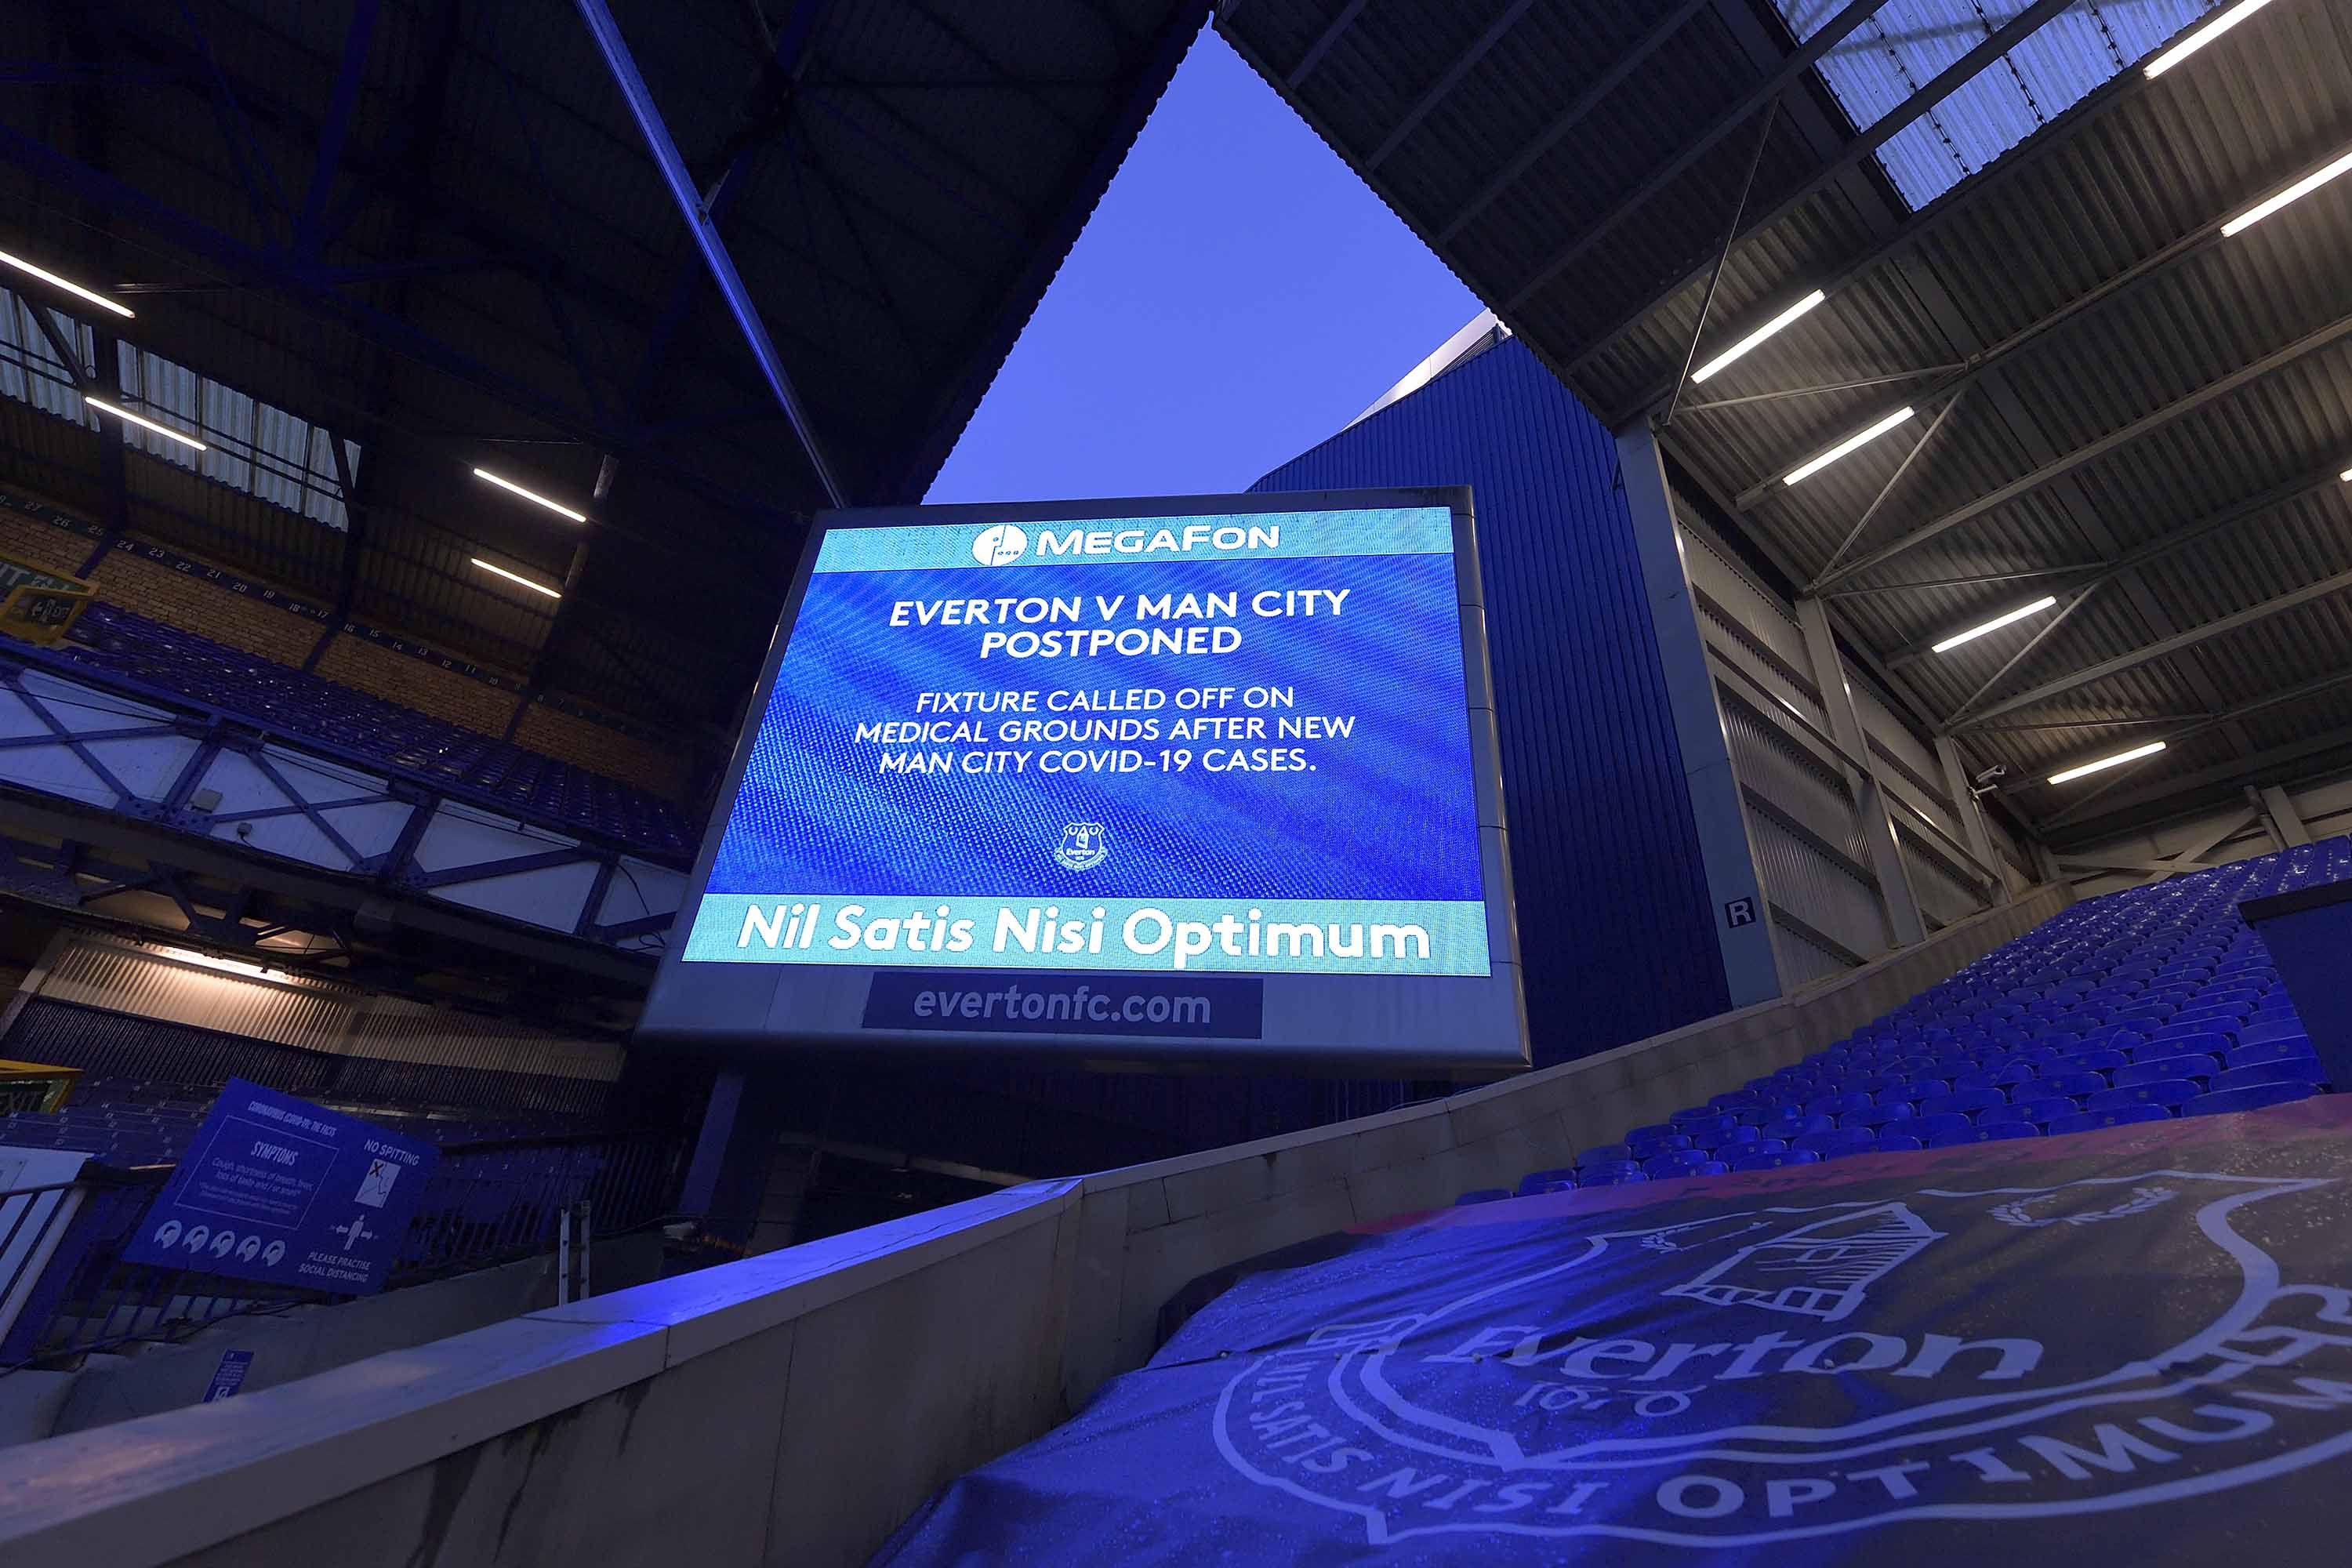 Manchester City's 'compromised' Covid-19 security bubble forces postponement of game at Everton